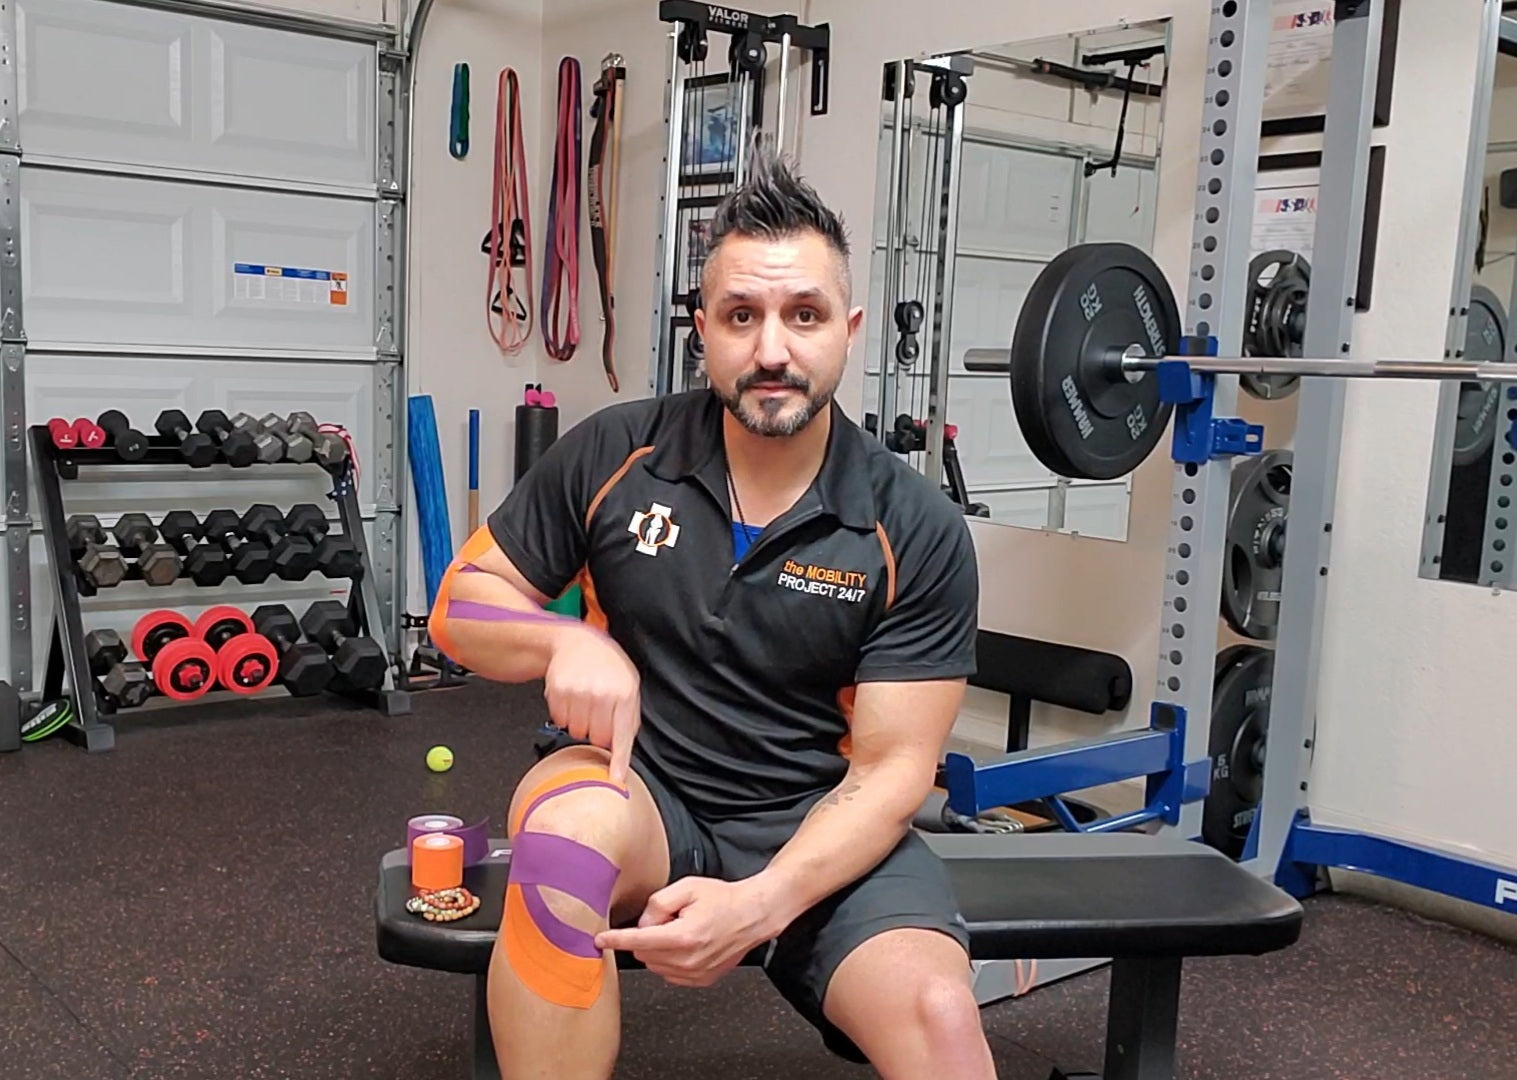 man_pointing_on_his_knee_with_kinesiology_tape